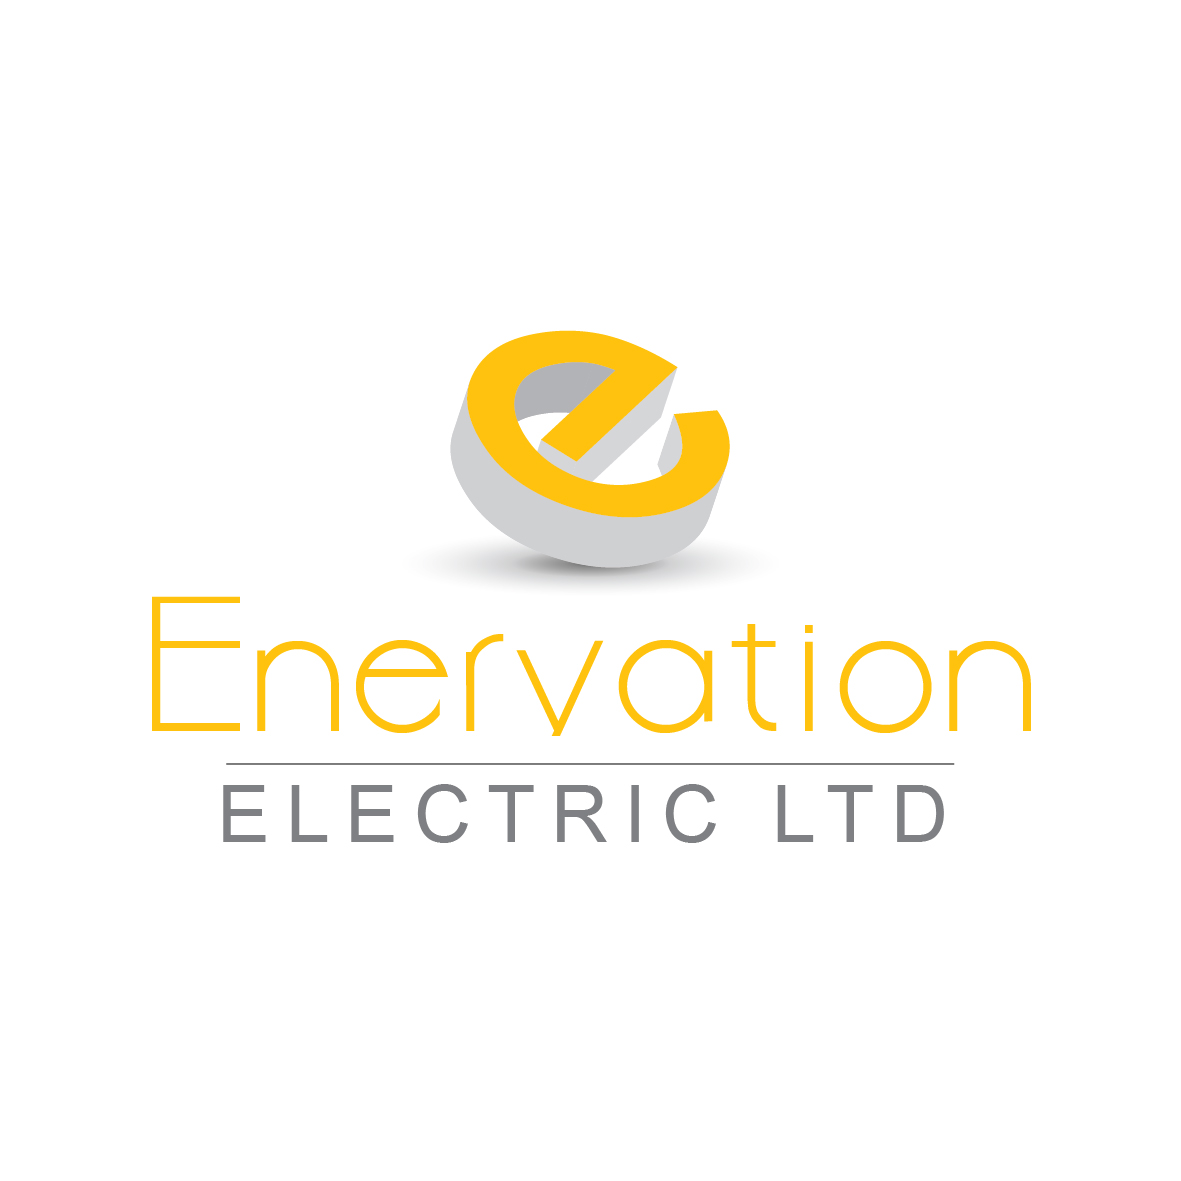 Business Card Design by aesthetic-art - Entry No. 139 in the Business Card Design Contest Enervation Logo Design.